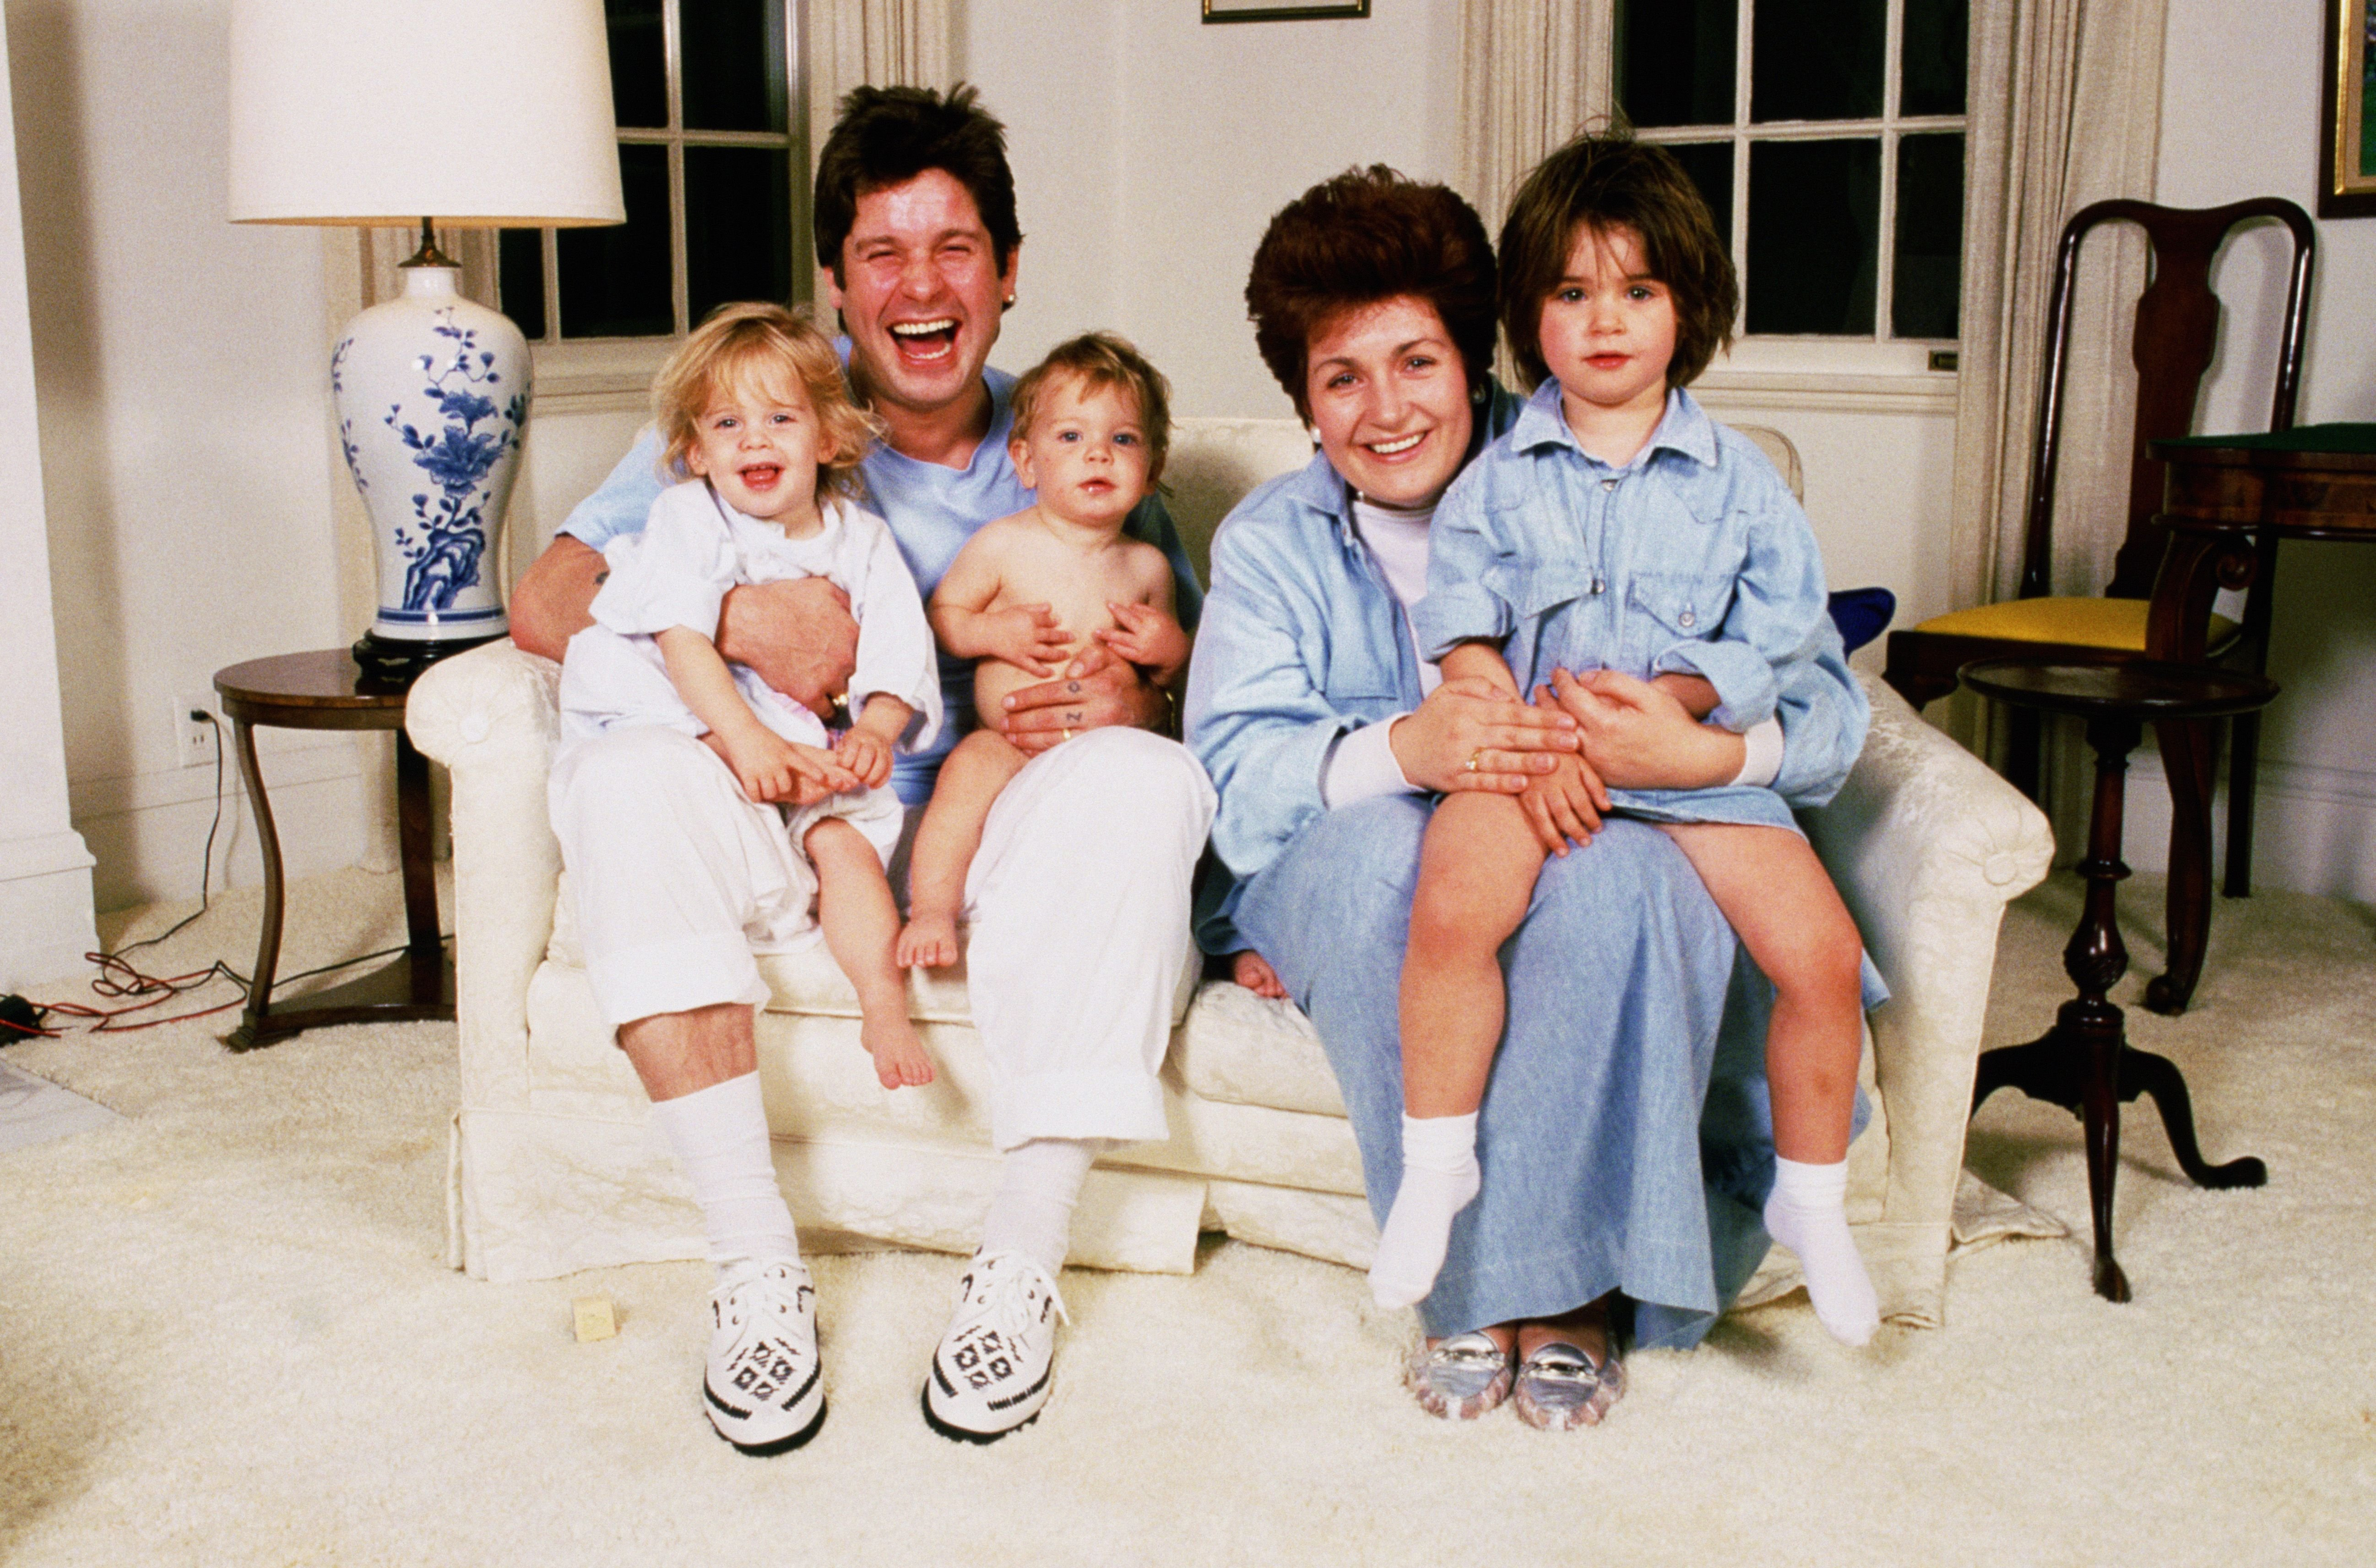 Ozzy and Sharon Osbourne at home with their children in early the 1990s | Source: Getty Images